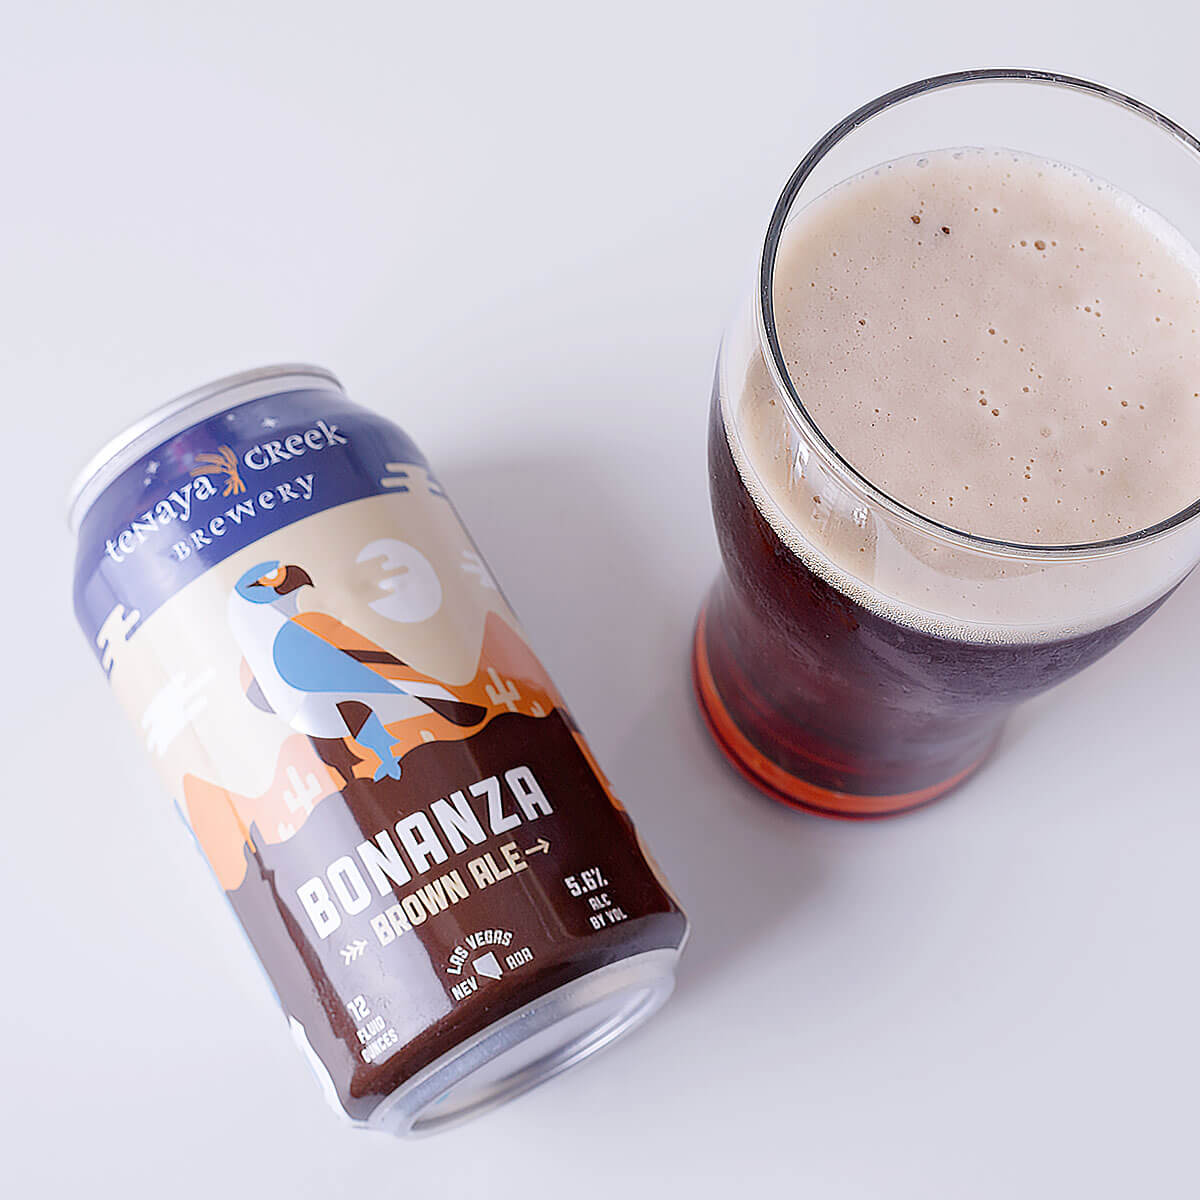 Bonanza Brown Ale is an English-style Brown Ale by Tenaya Creek Brewery that blends floral hops, biscuit, toffee, and fruity esters.